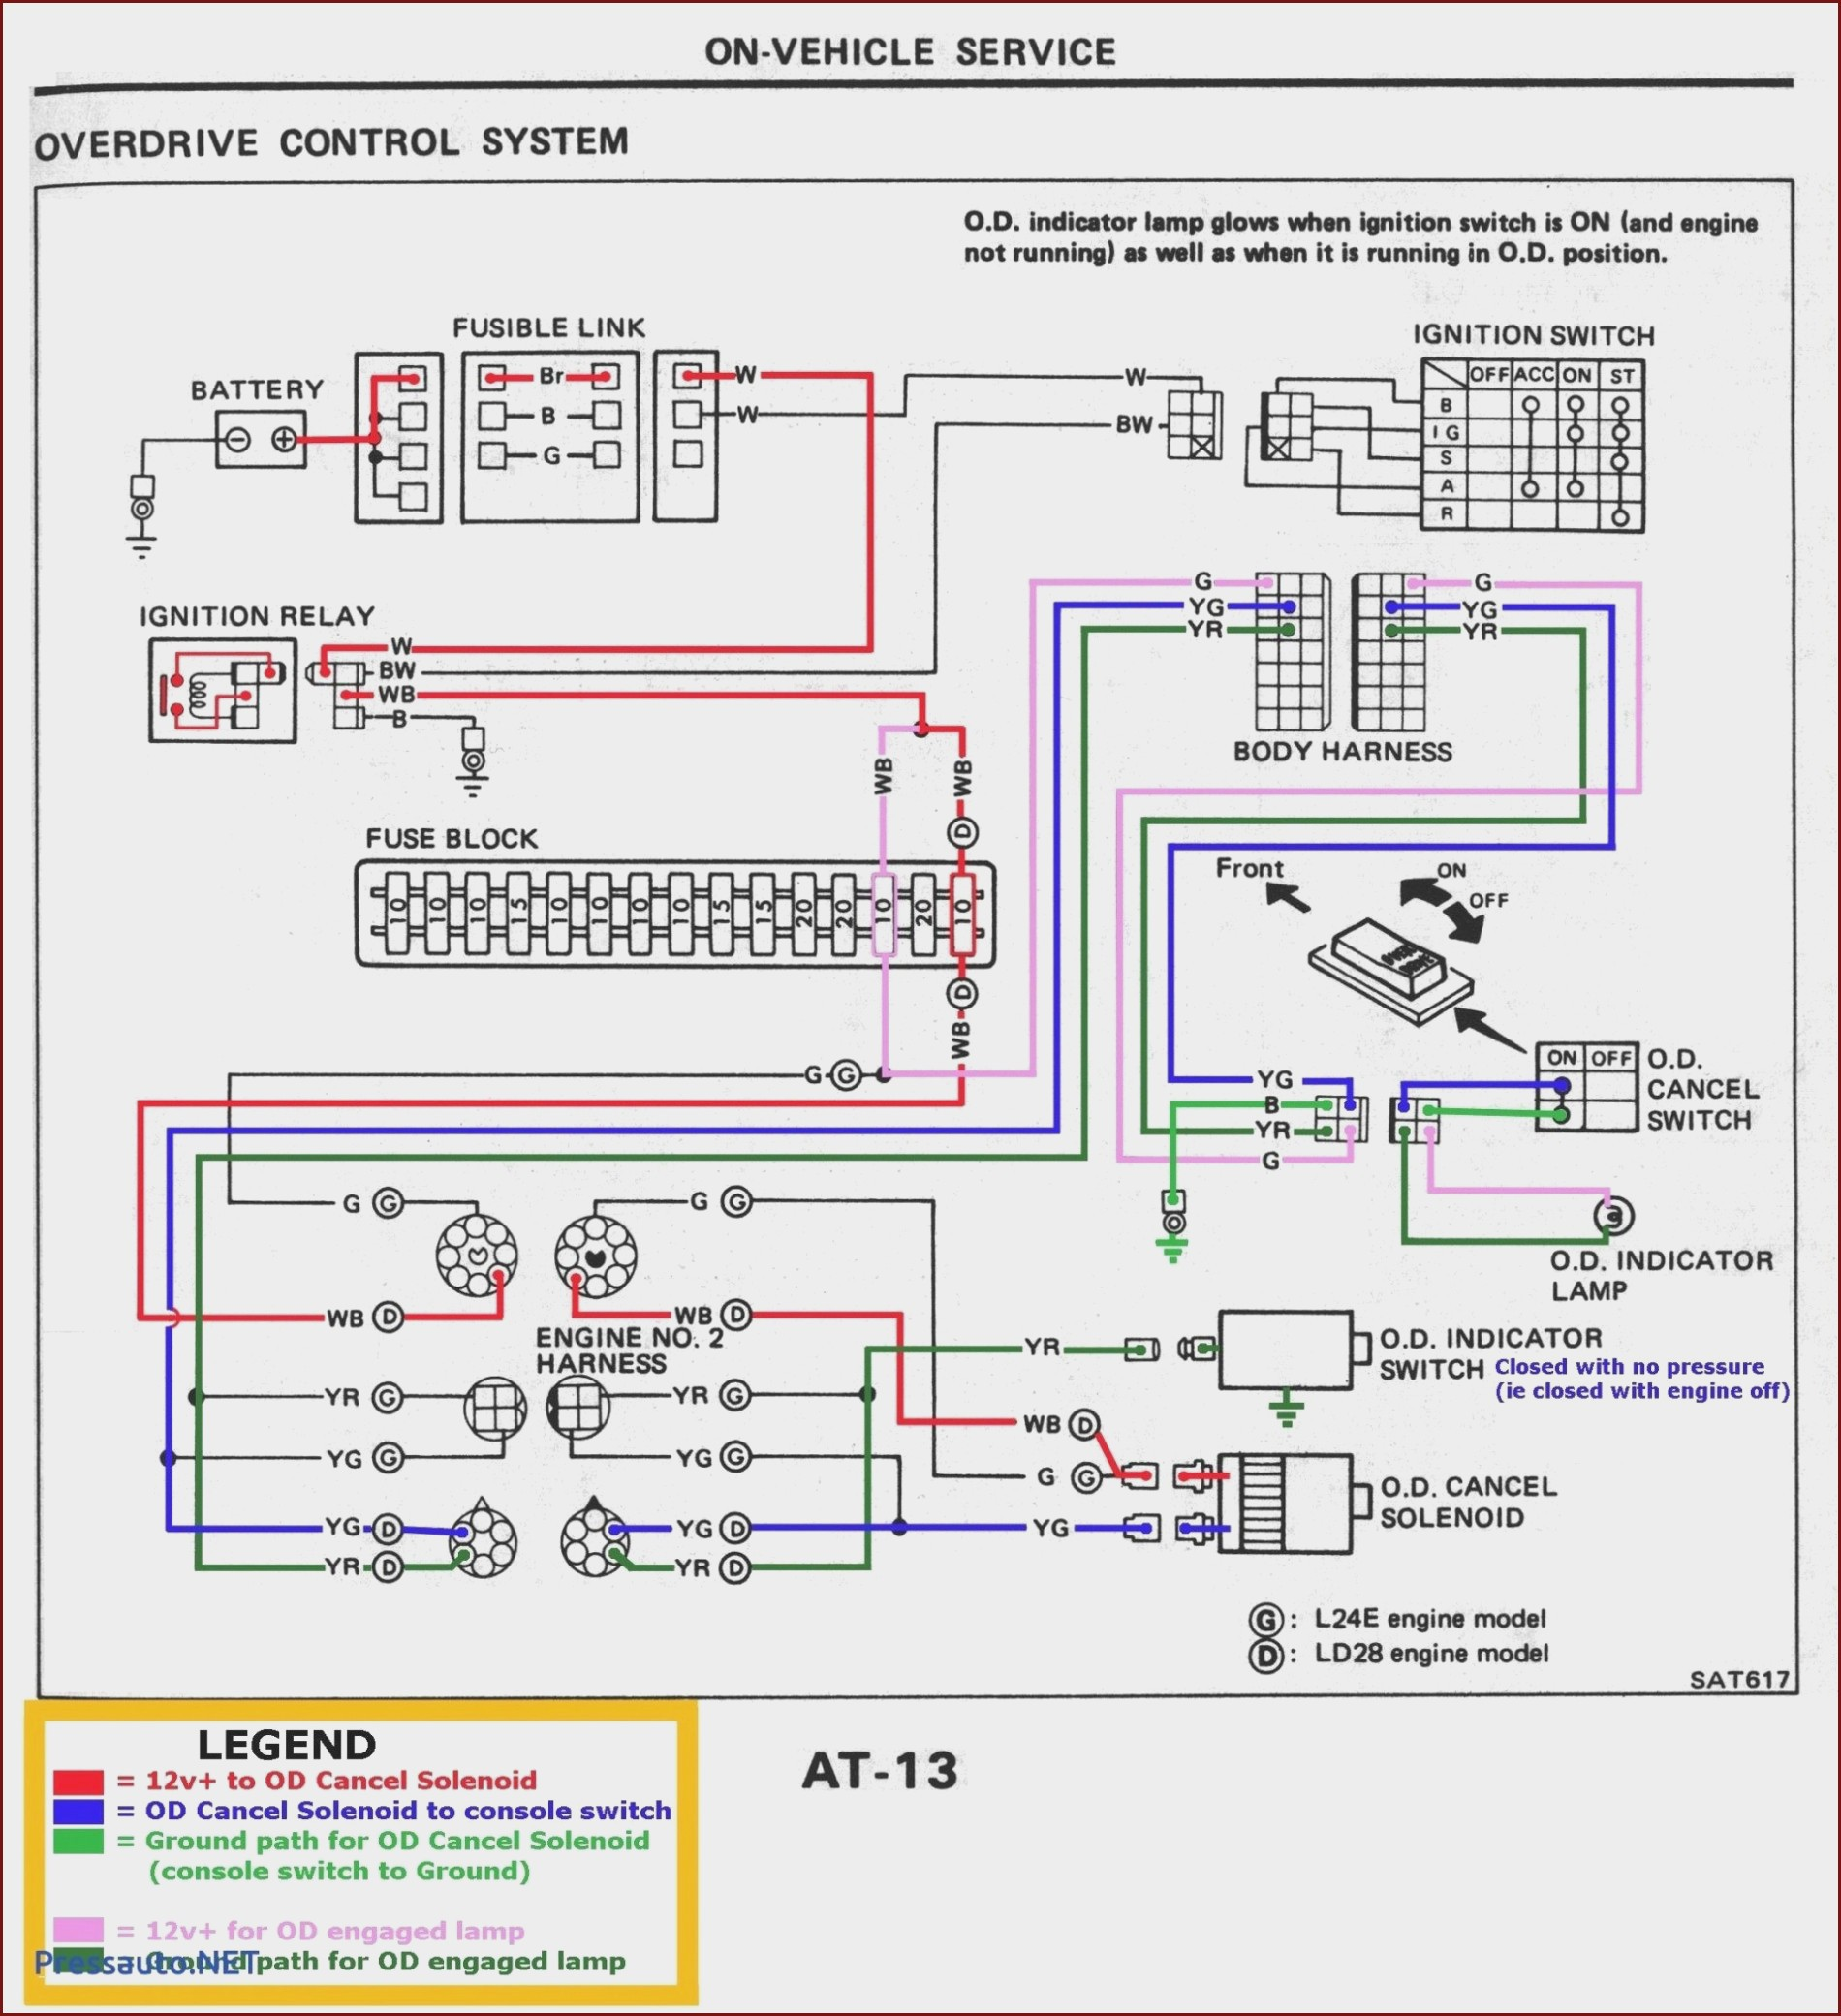 2002 ford Focus Wiring Diagram ford F150 Trailer Wiring Diagram at Manuals Library Of 2002 ford Focus Wiring Diagram Adt Focus Wiring Diagram Go Wiring Diagram